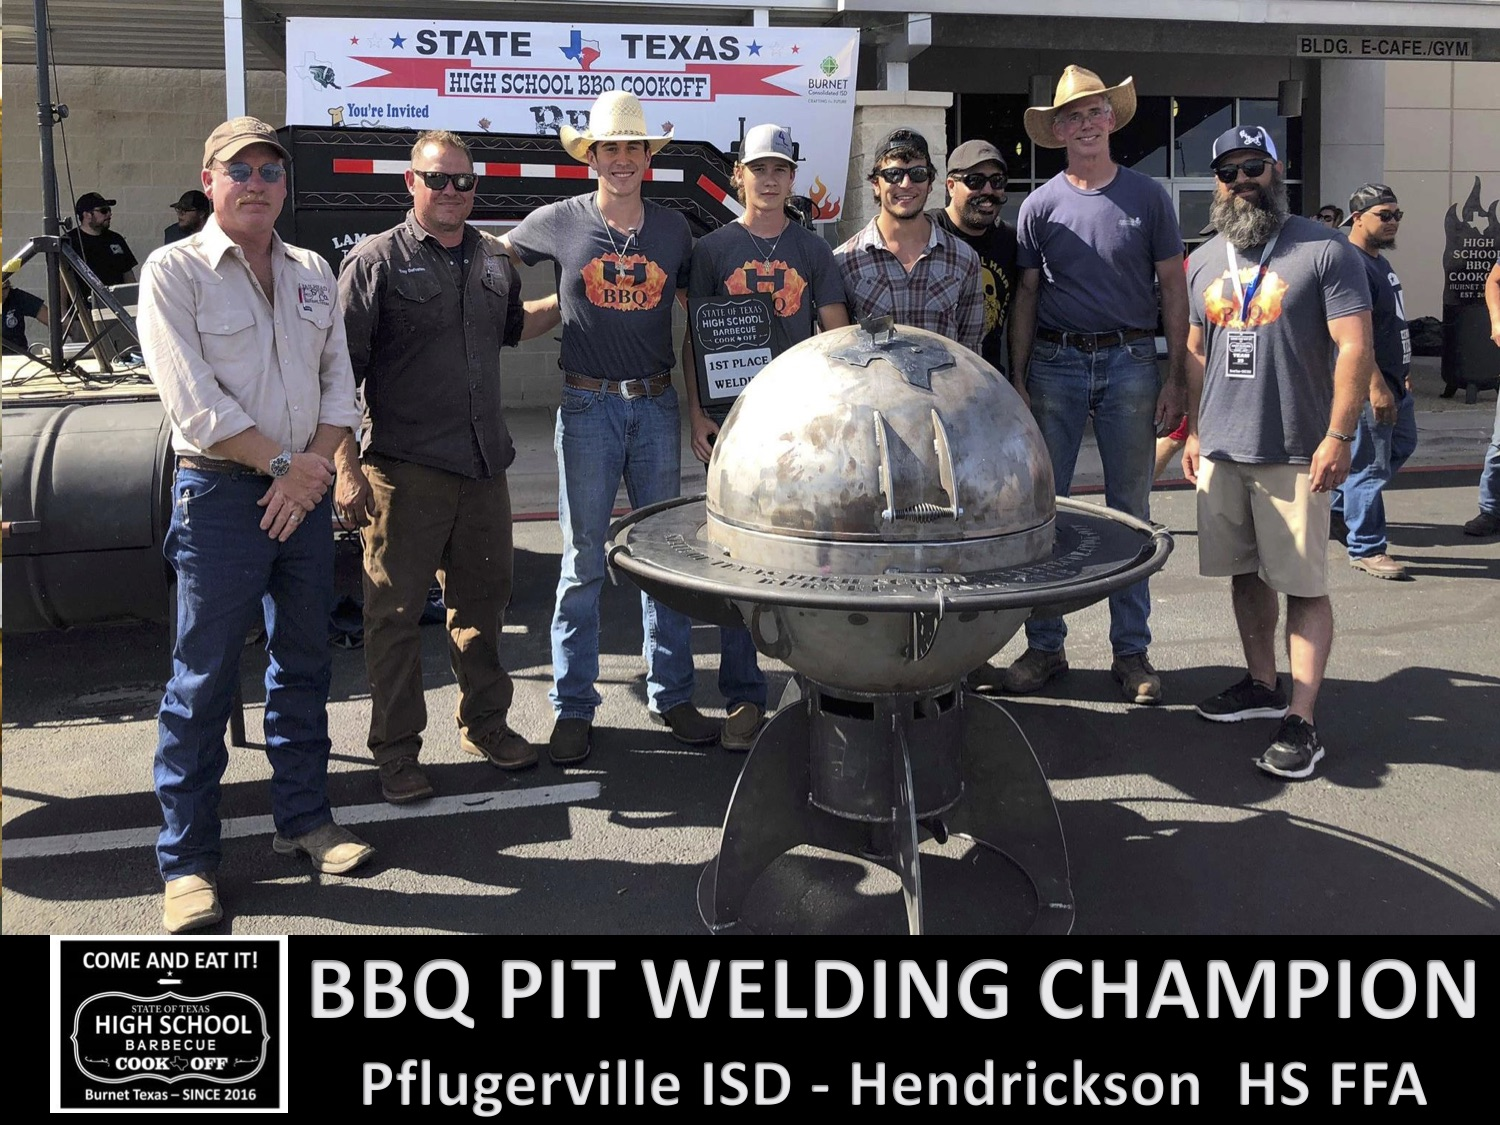 2018 Texas HS welding champs